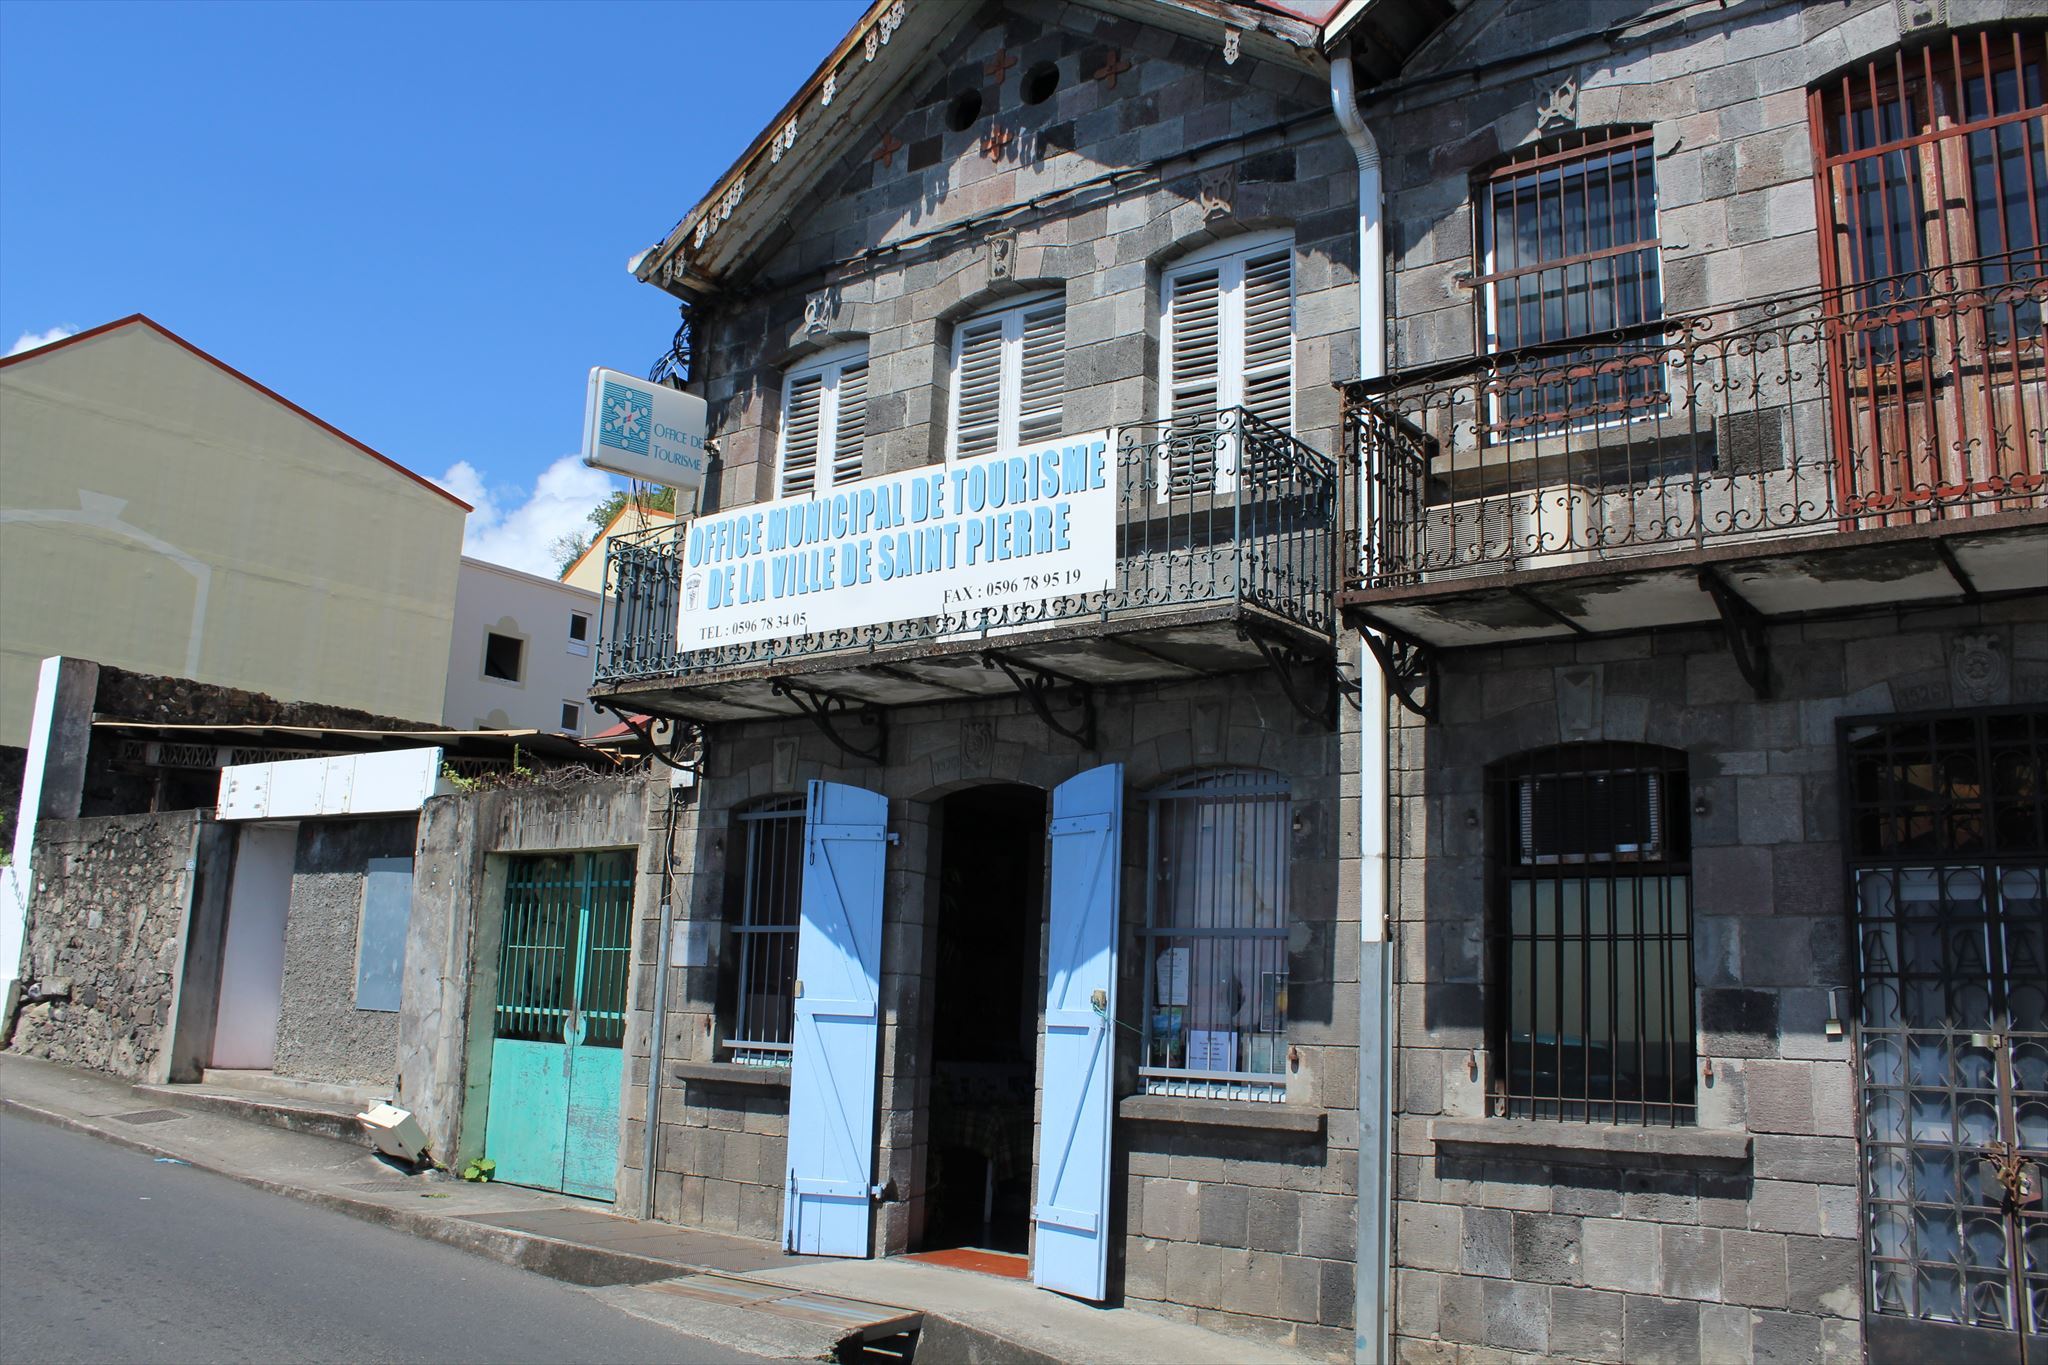 Office municipal de tourisme saint pierre martinique tourist information centers visitor - Office de tourisme saint pierre sur dives ...